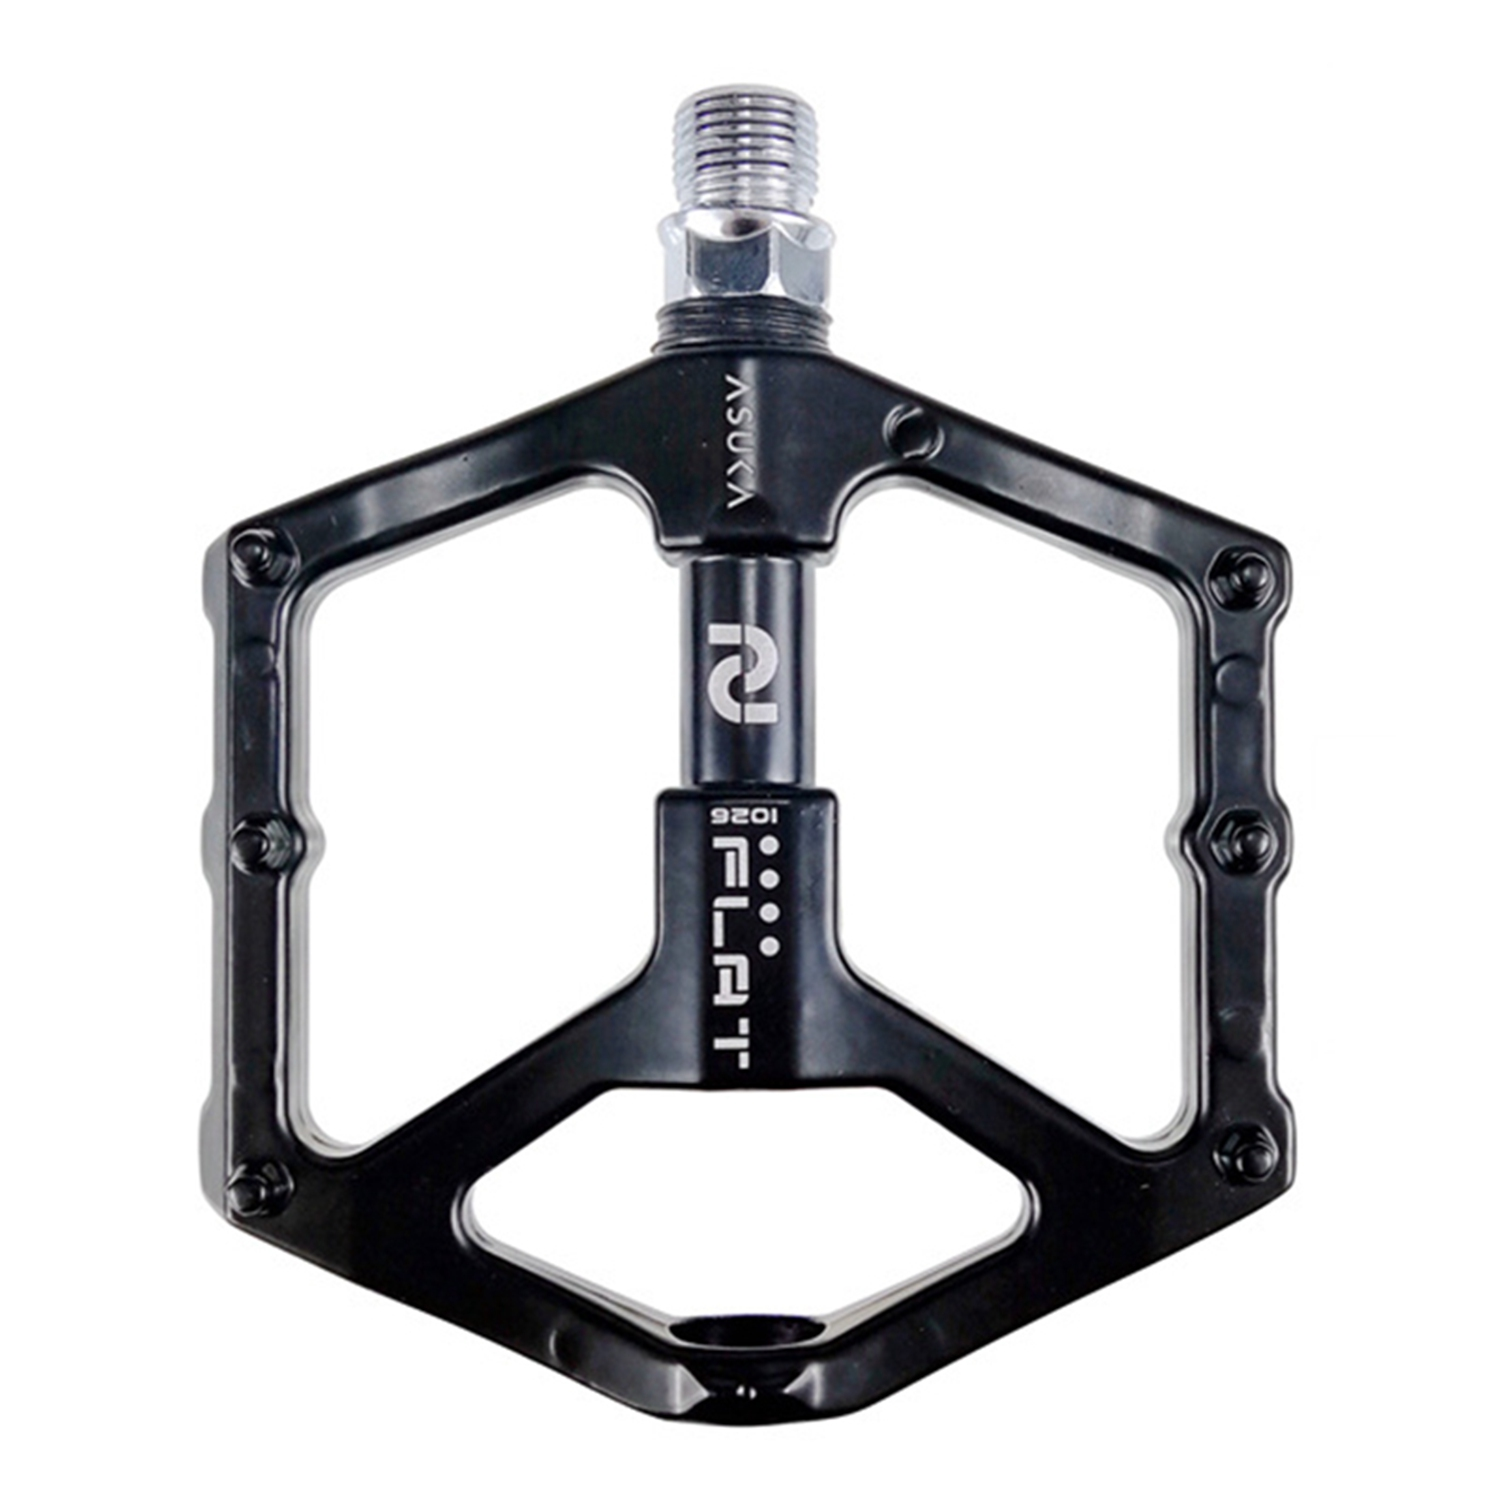 Shanmashi 1 Pair Fixed Mtb Bmx Bicycle Pedals Foot Pegs Outdoor Riding Sport Durable Pedal Dhcrank Mtb Road Bike Cycli in Bicycle Pedal from Sports Entertainment